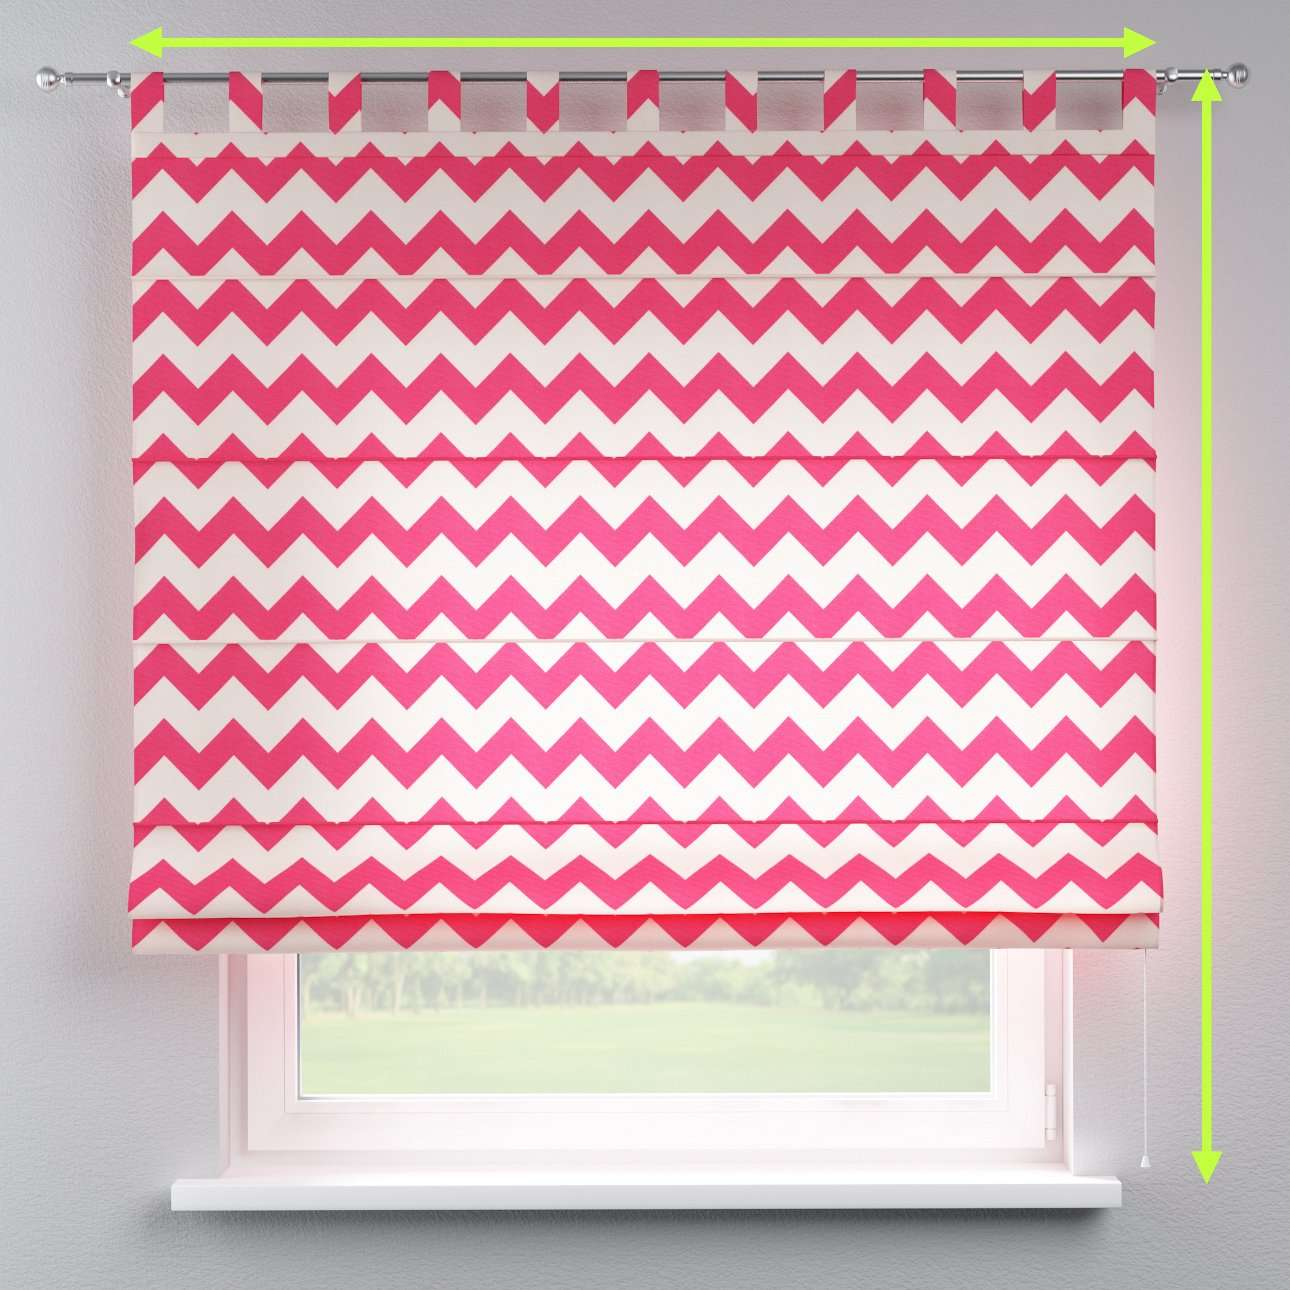 Verona tab top roman blind in collection Comic Book & Geo Prints, fabric: 135-00